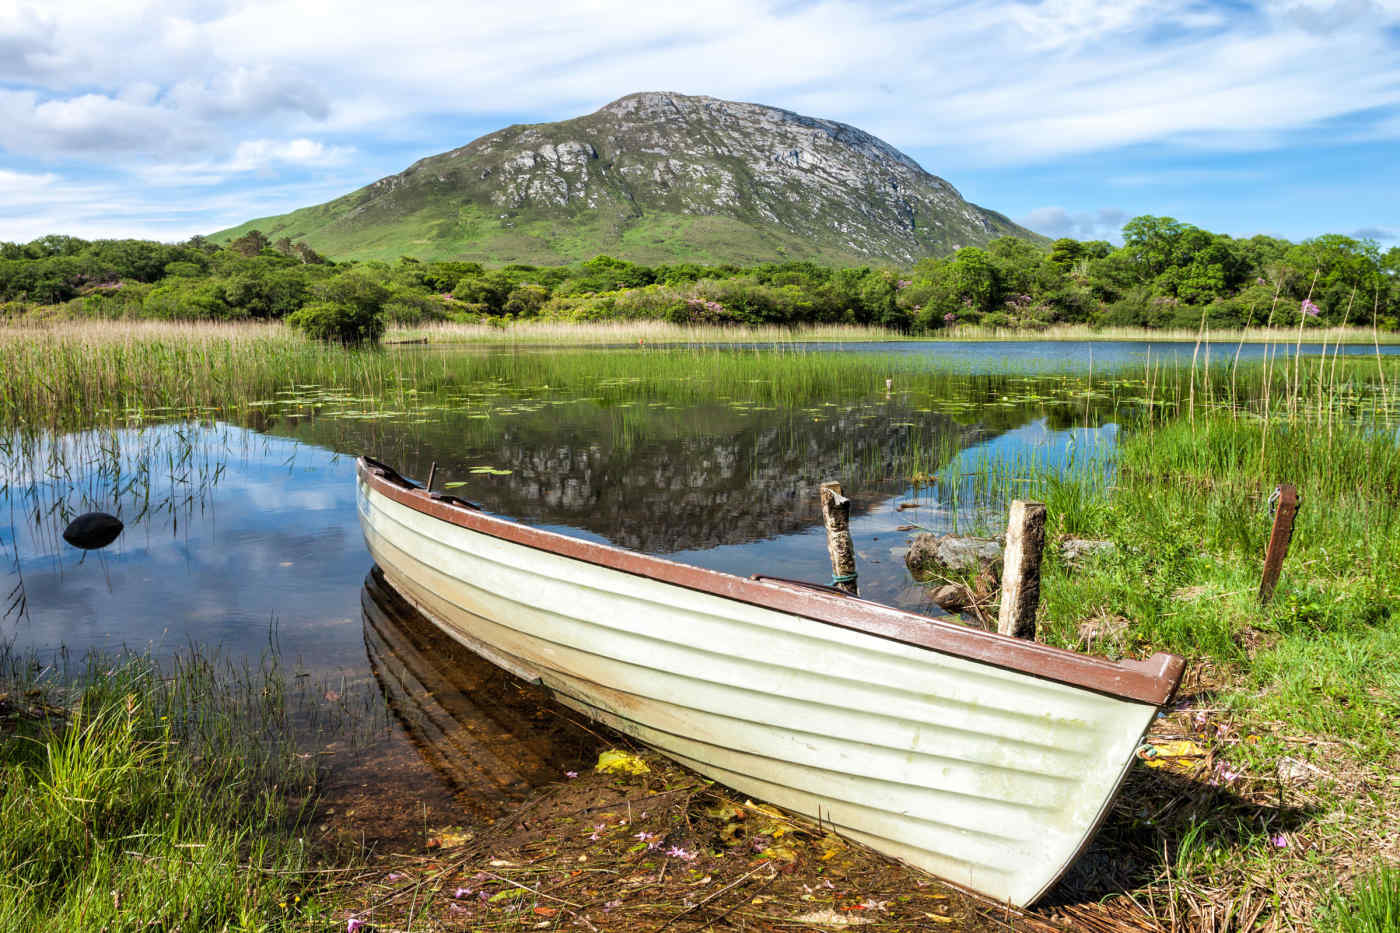 Connemara National Park in County Galway, Ireland